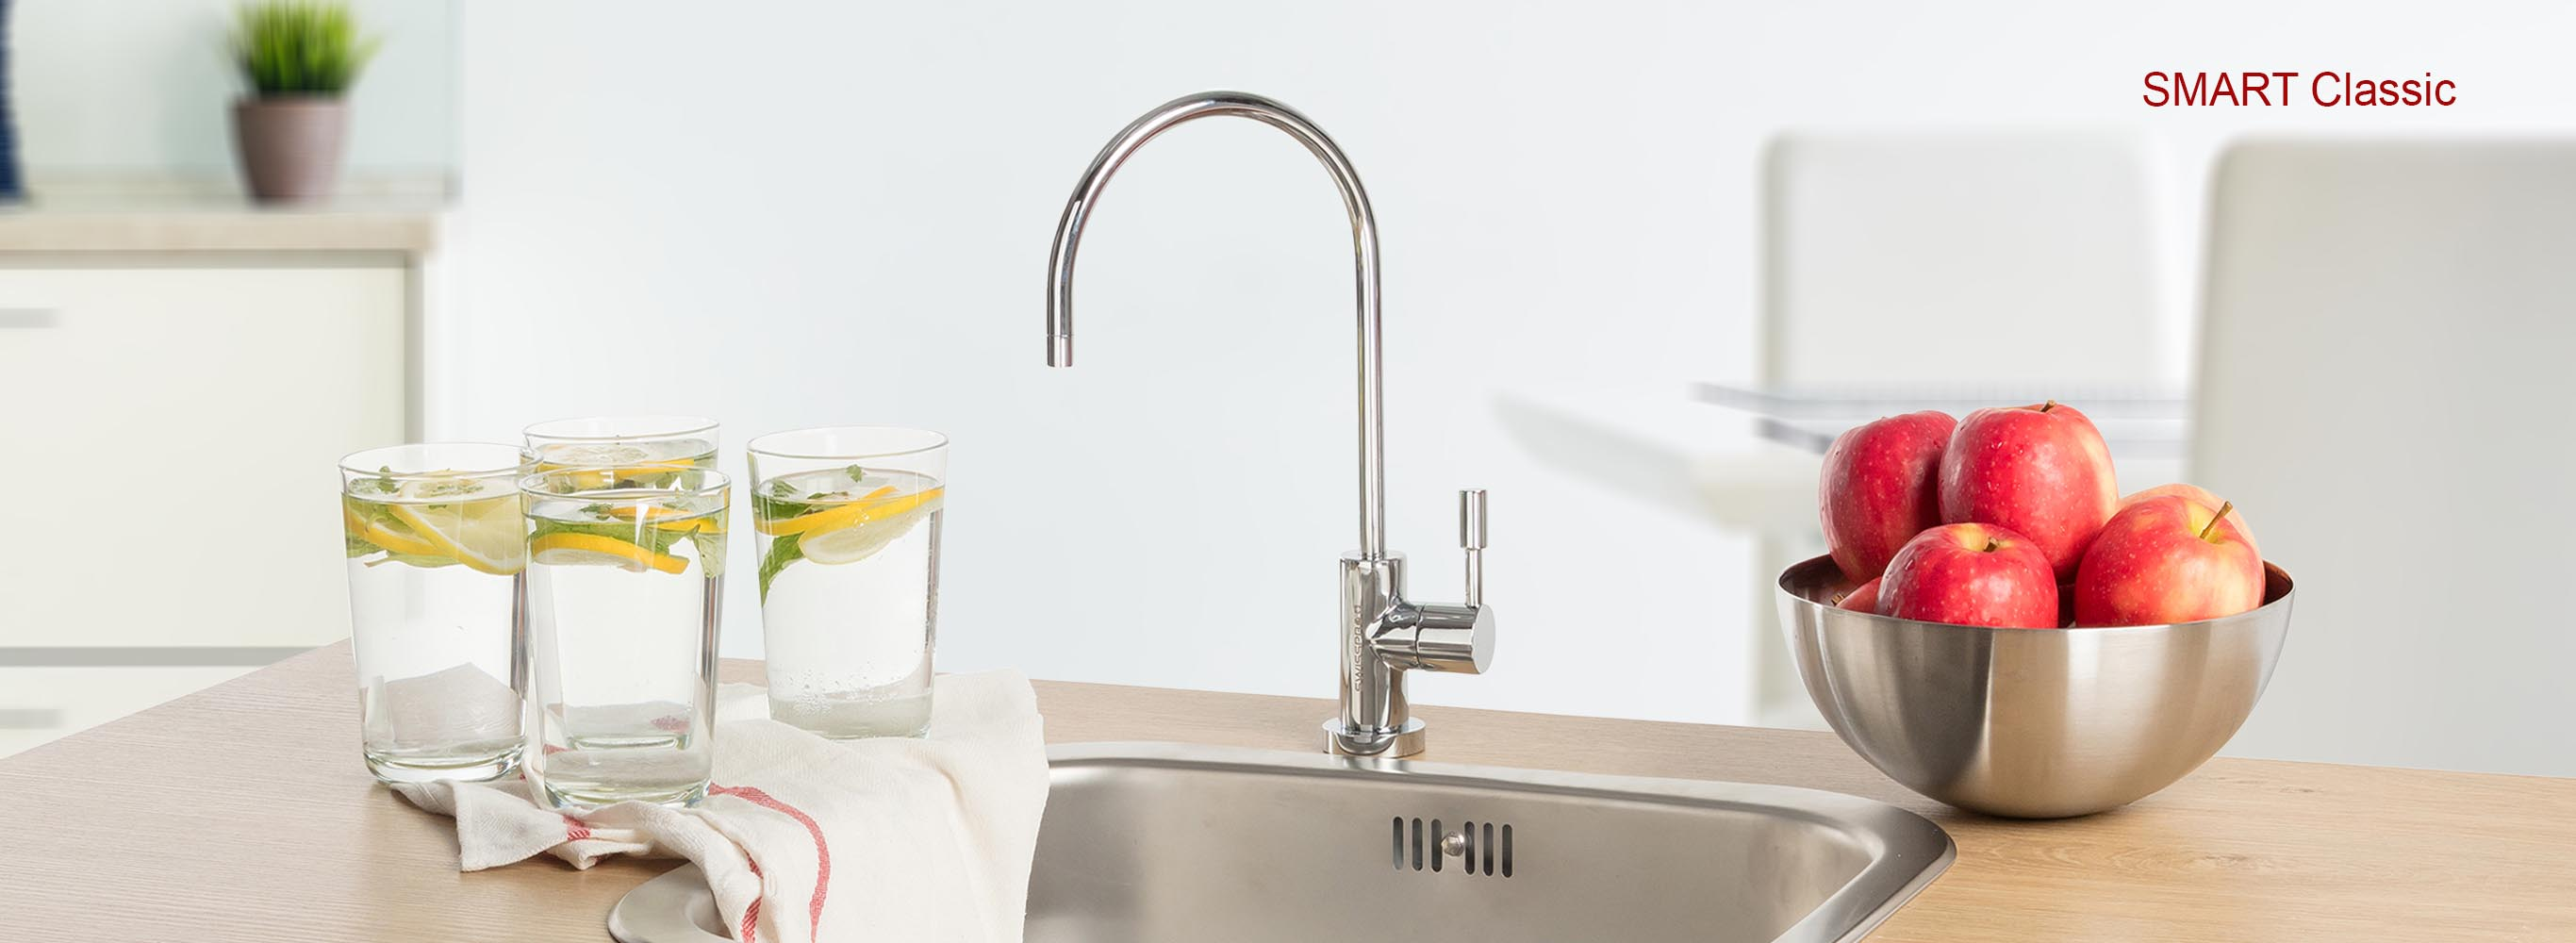 Smart Classic - Separate Drinking Tap